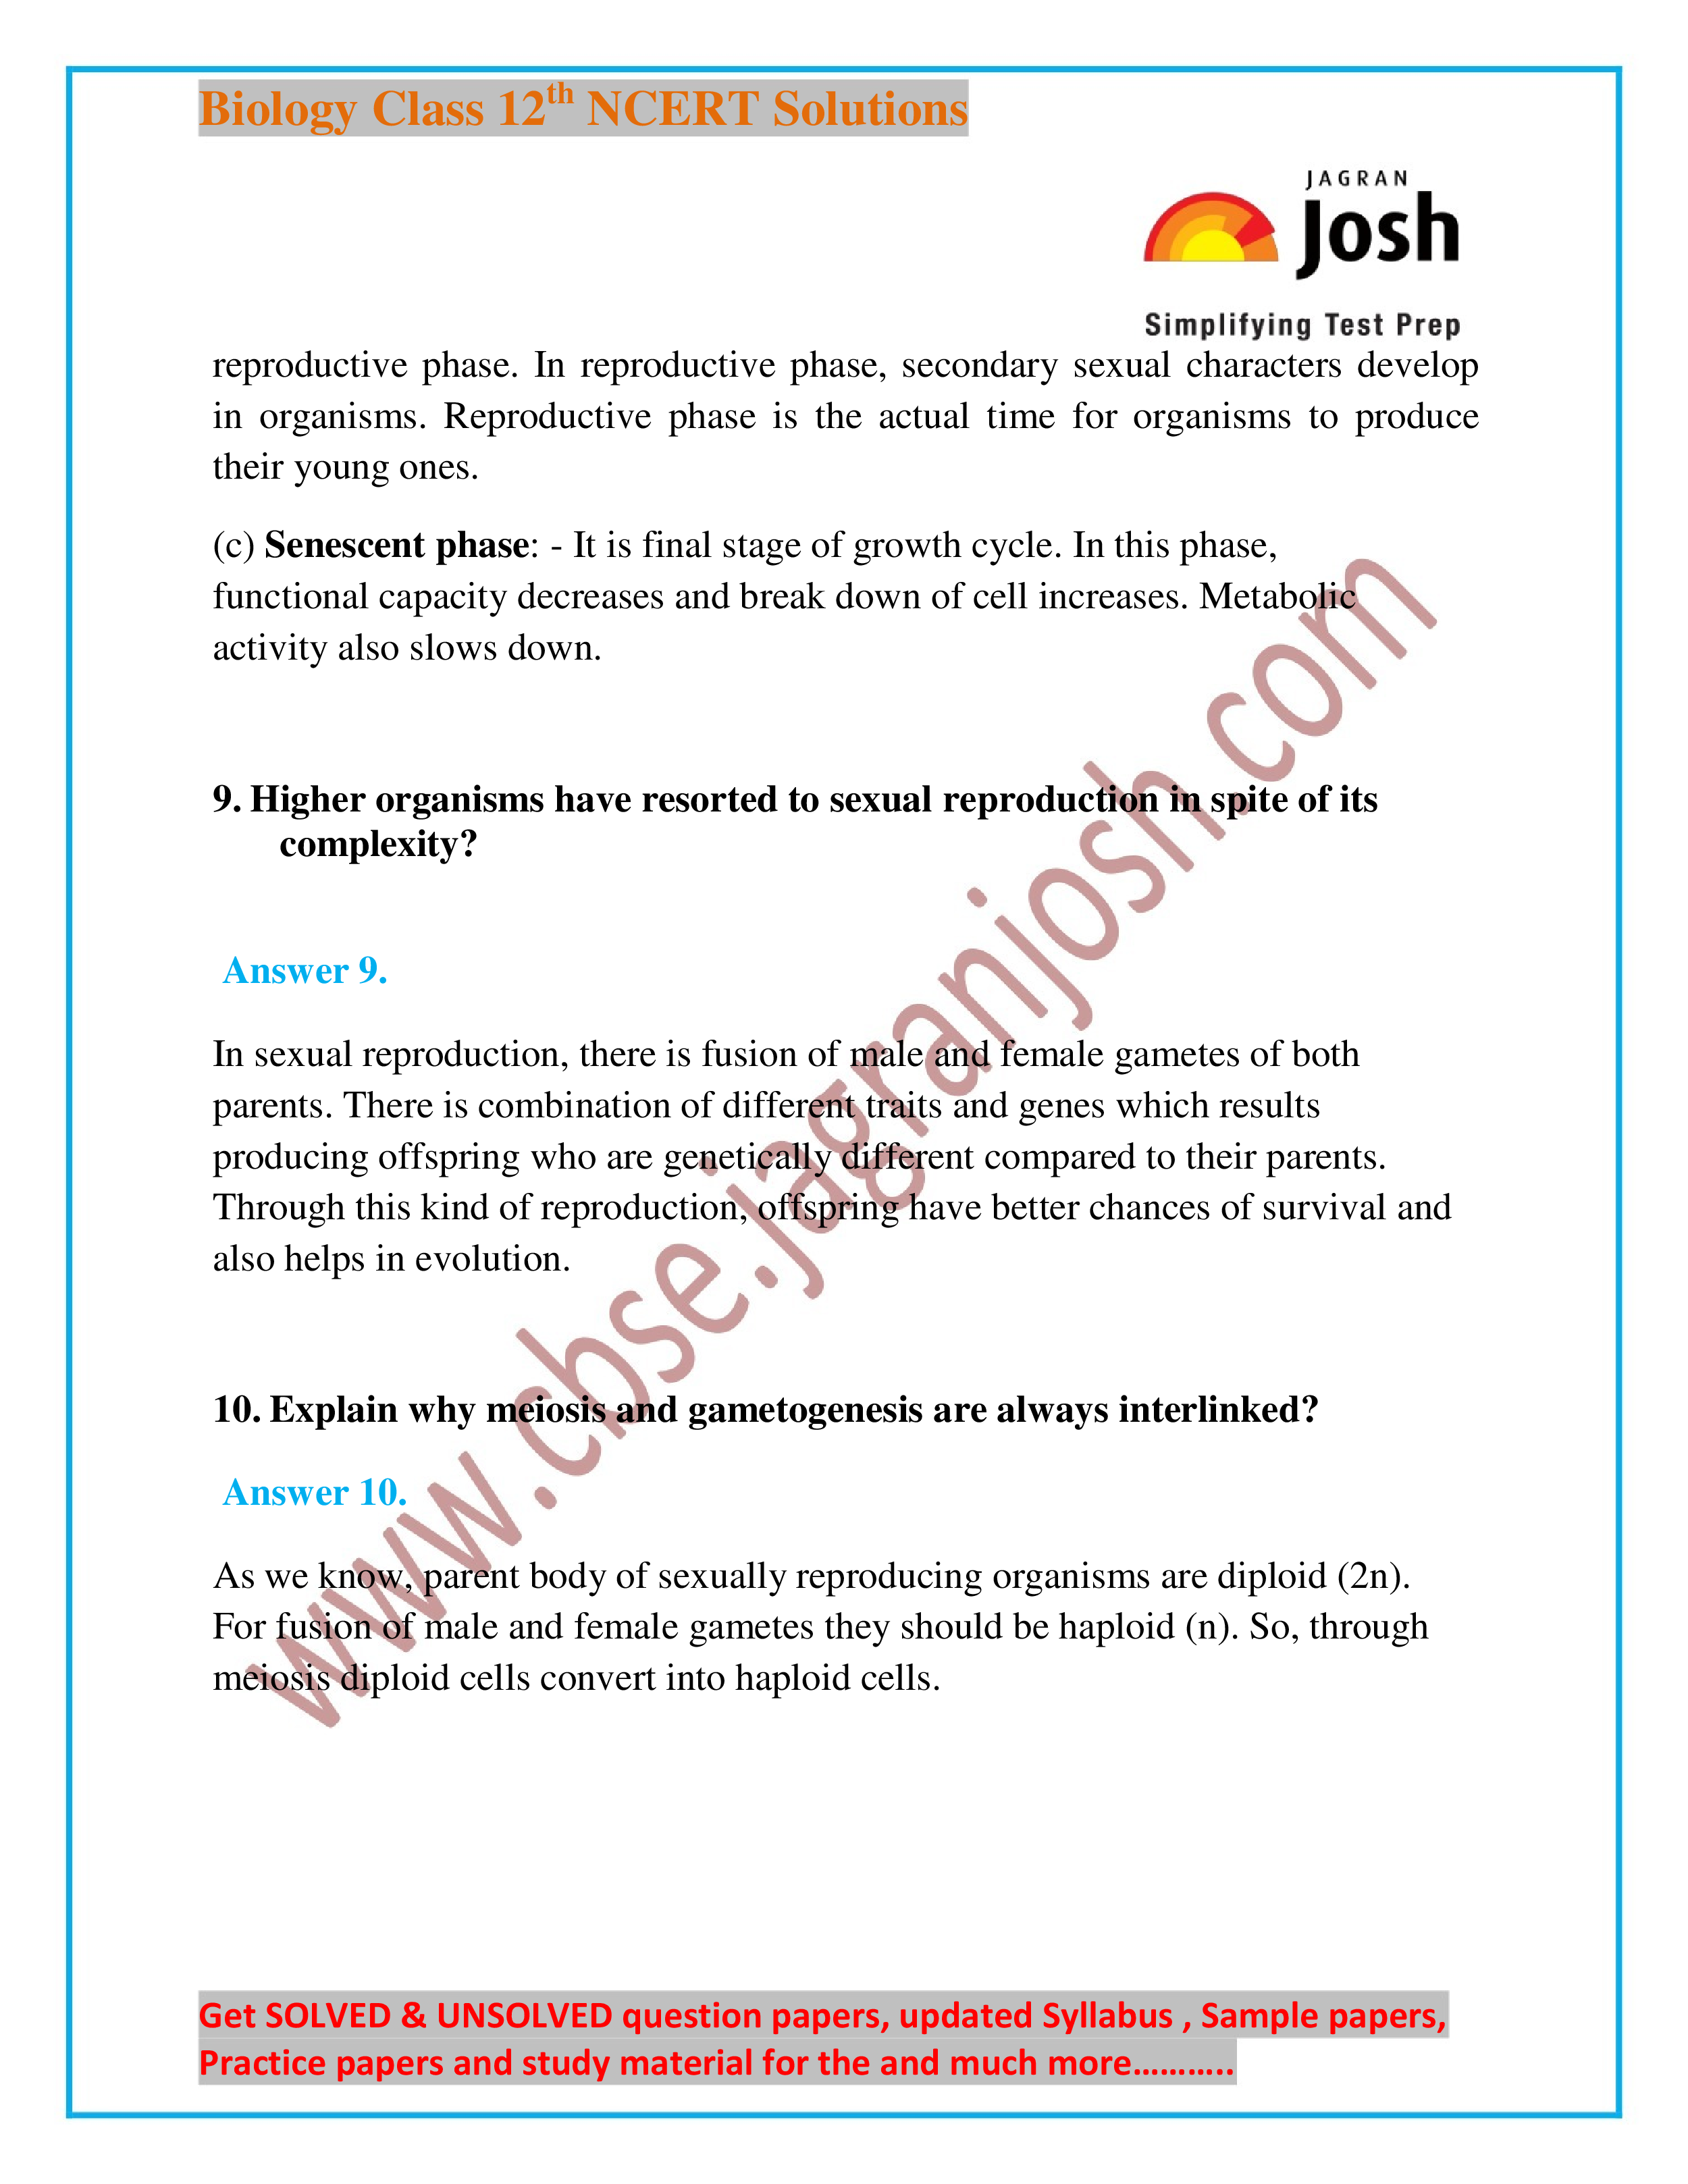 Ncert xii biology chapterwise solutions ebook array ncert biology solution for class xii by jagran josh pdf download rh kopykitab com fandeluxe Choice Image